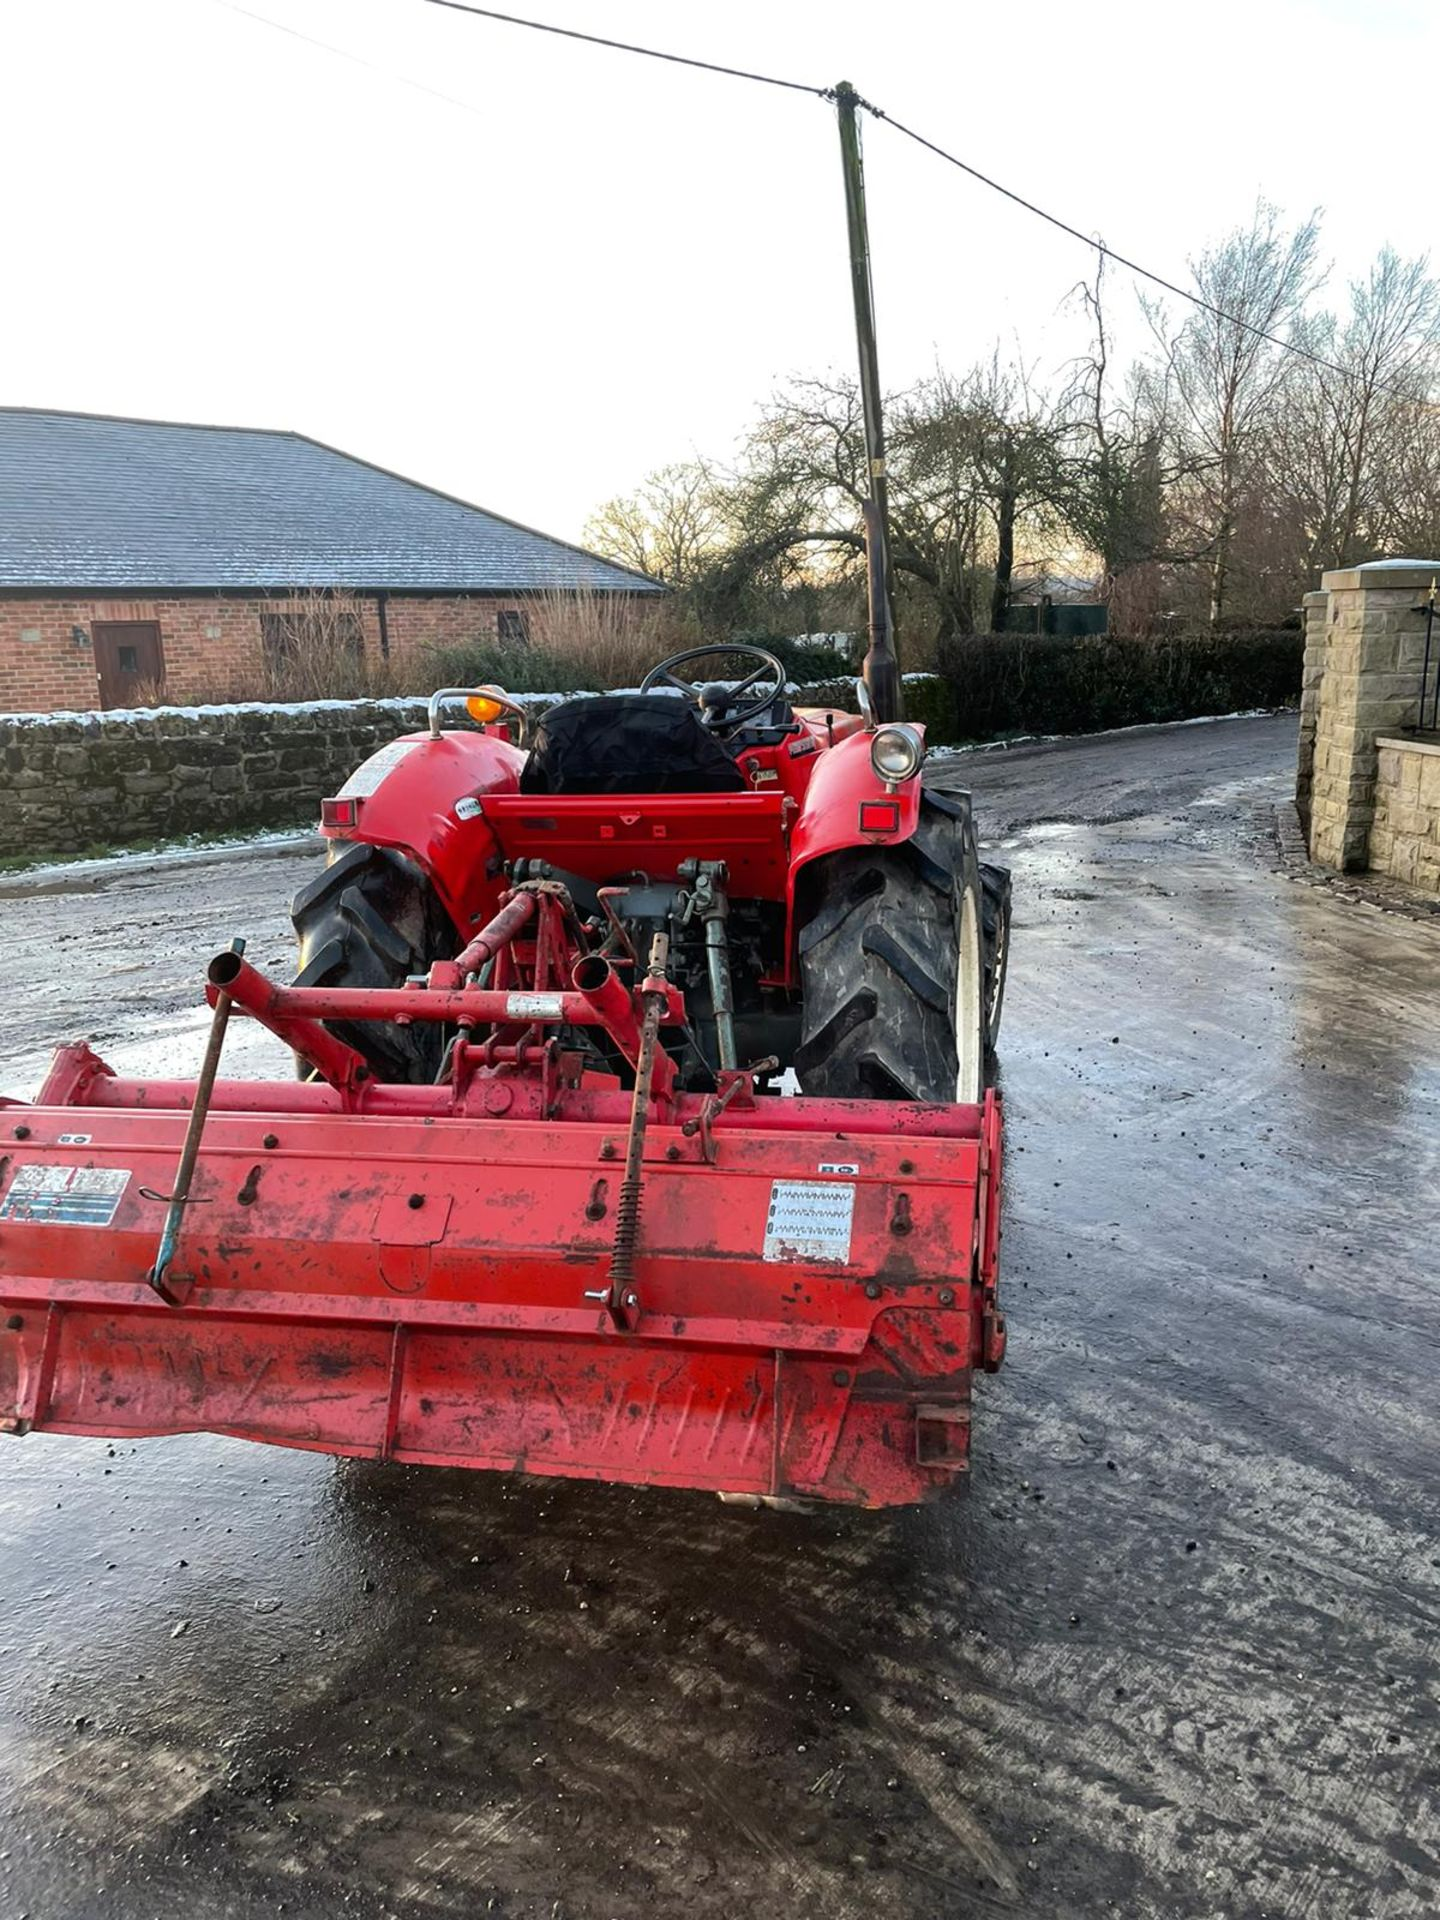 YANMAR YM2820D TRACTOR, 4 WHEEL DRIVE, WITH ROTATOR, RUNS AND WORKS, 3 POINT LINKAGE *PLUS VAT* - Image 5 of 8